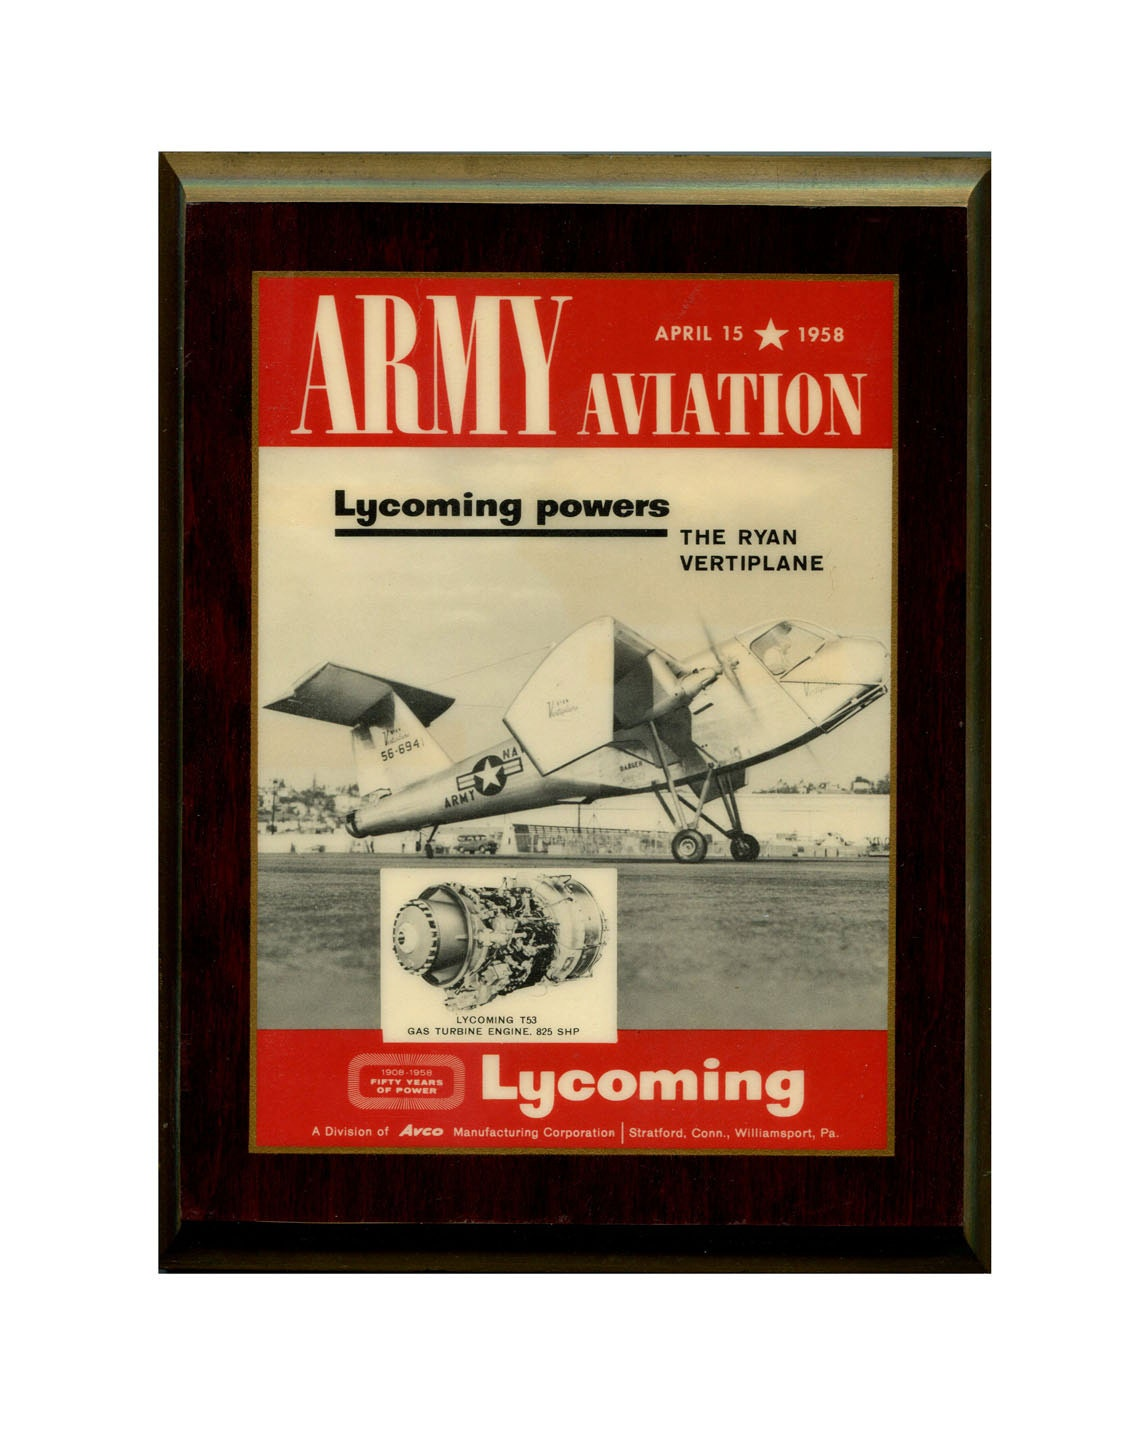 Vintage Aviation Wall Decor : Vintage aviation wall decor art laminated wood plaque ryan